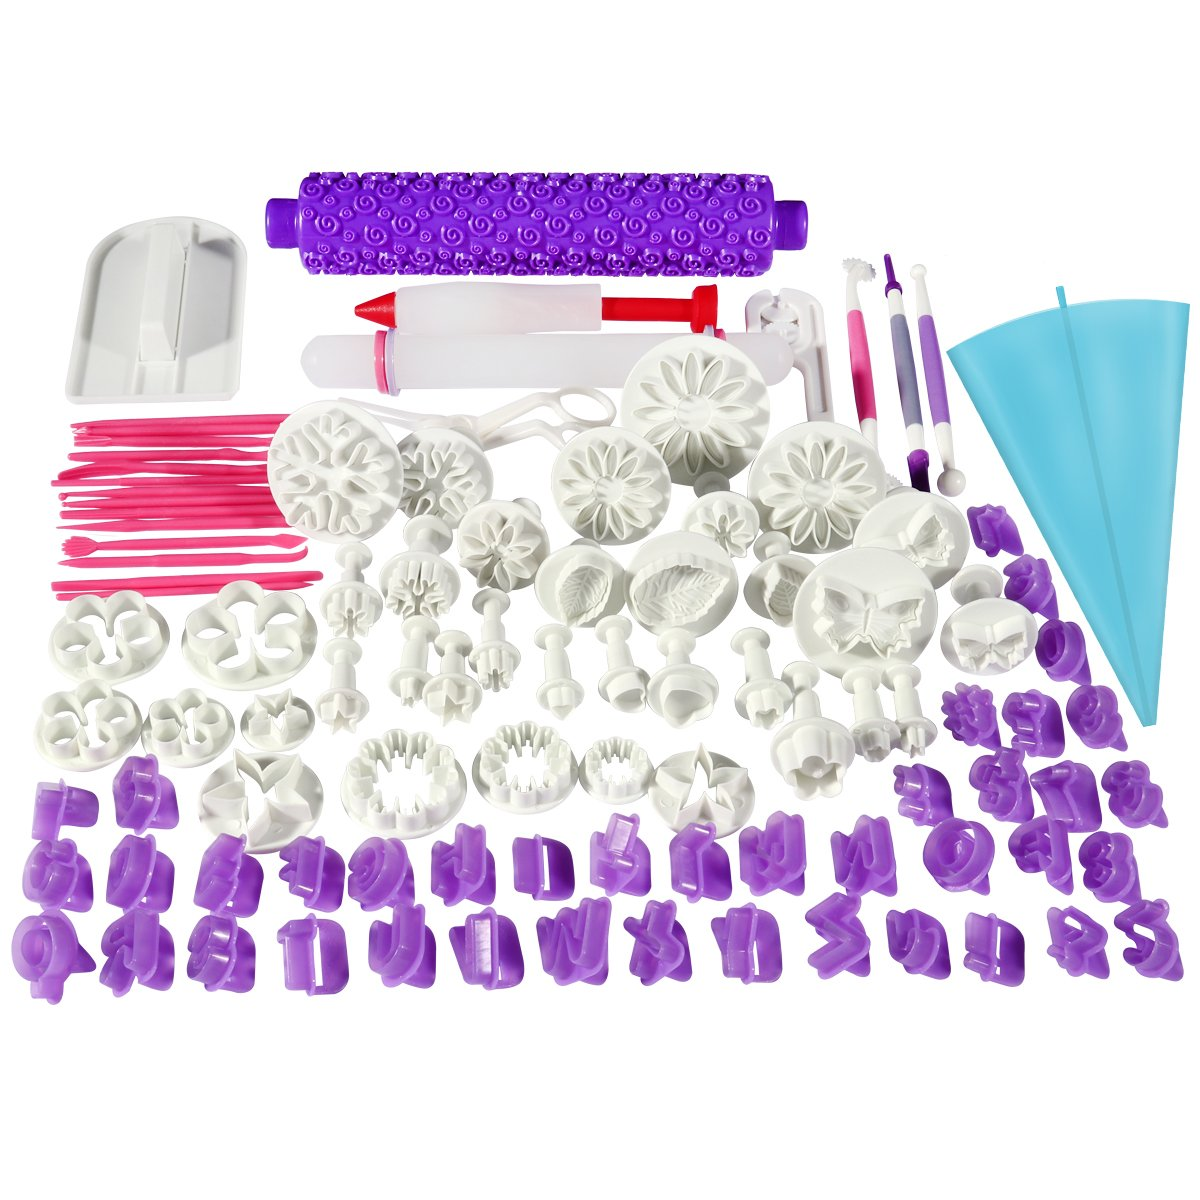 BESTOMZ 94pcs Fondant Cake Cutter Cookie Bakeware Icing Decoration Kit with Flower Modelling Mold Mould Fondant Tools